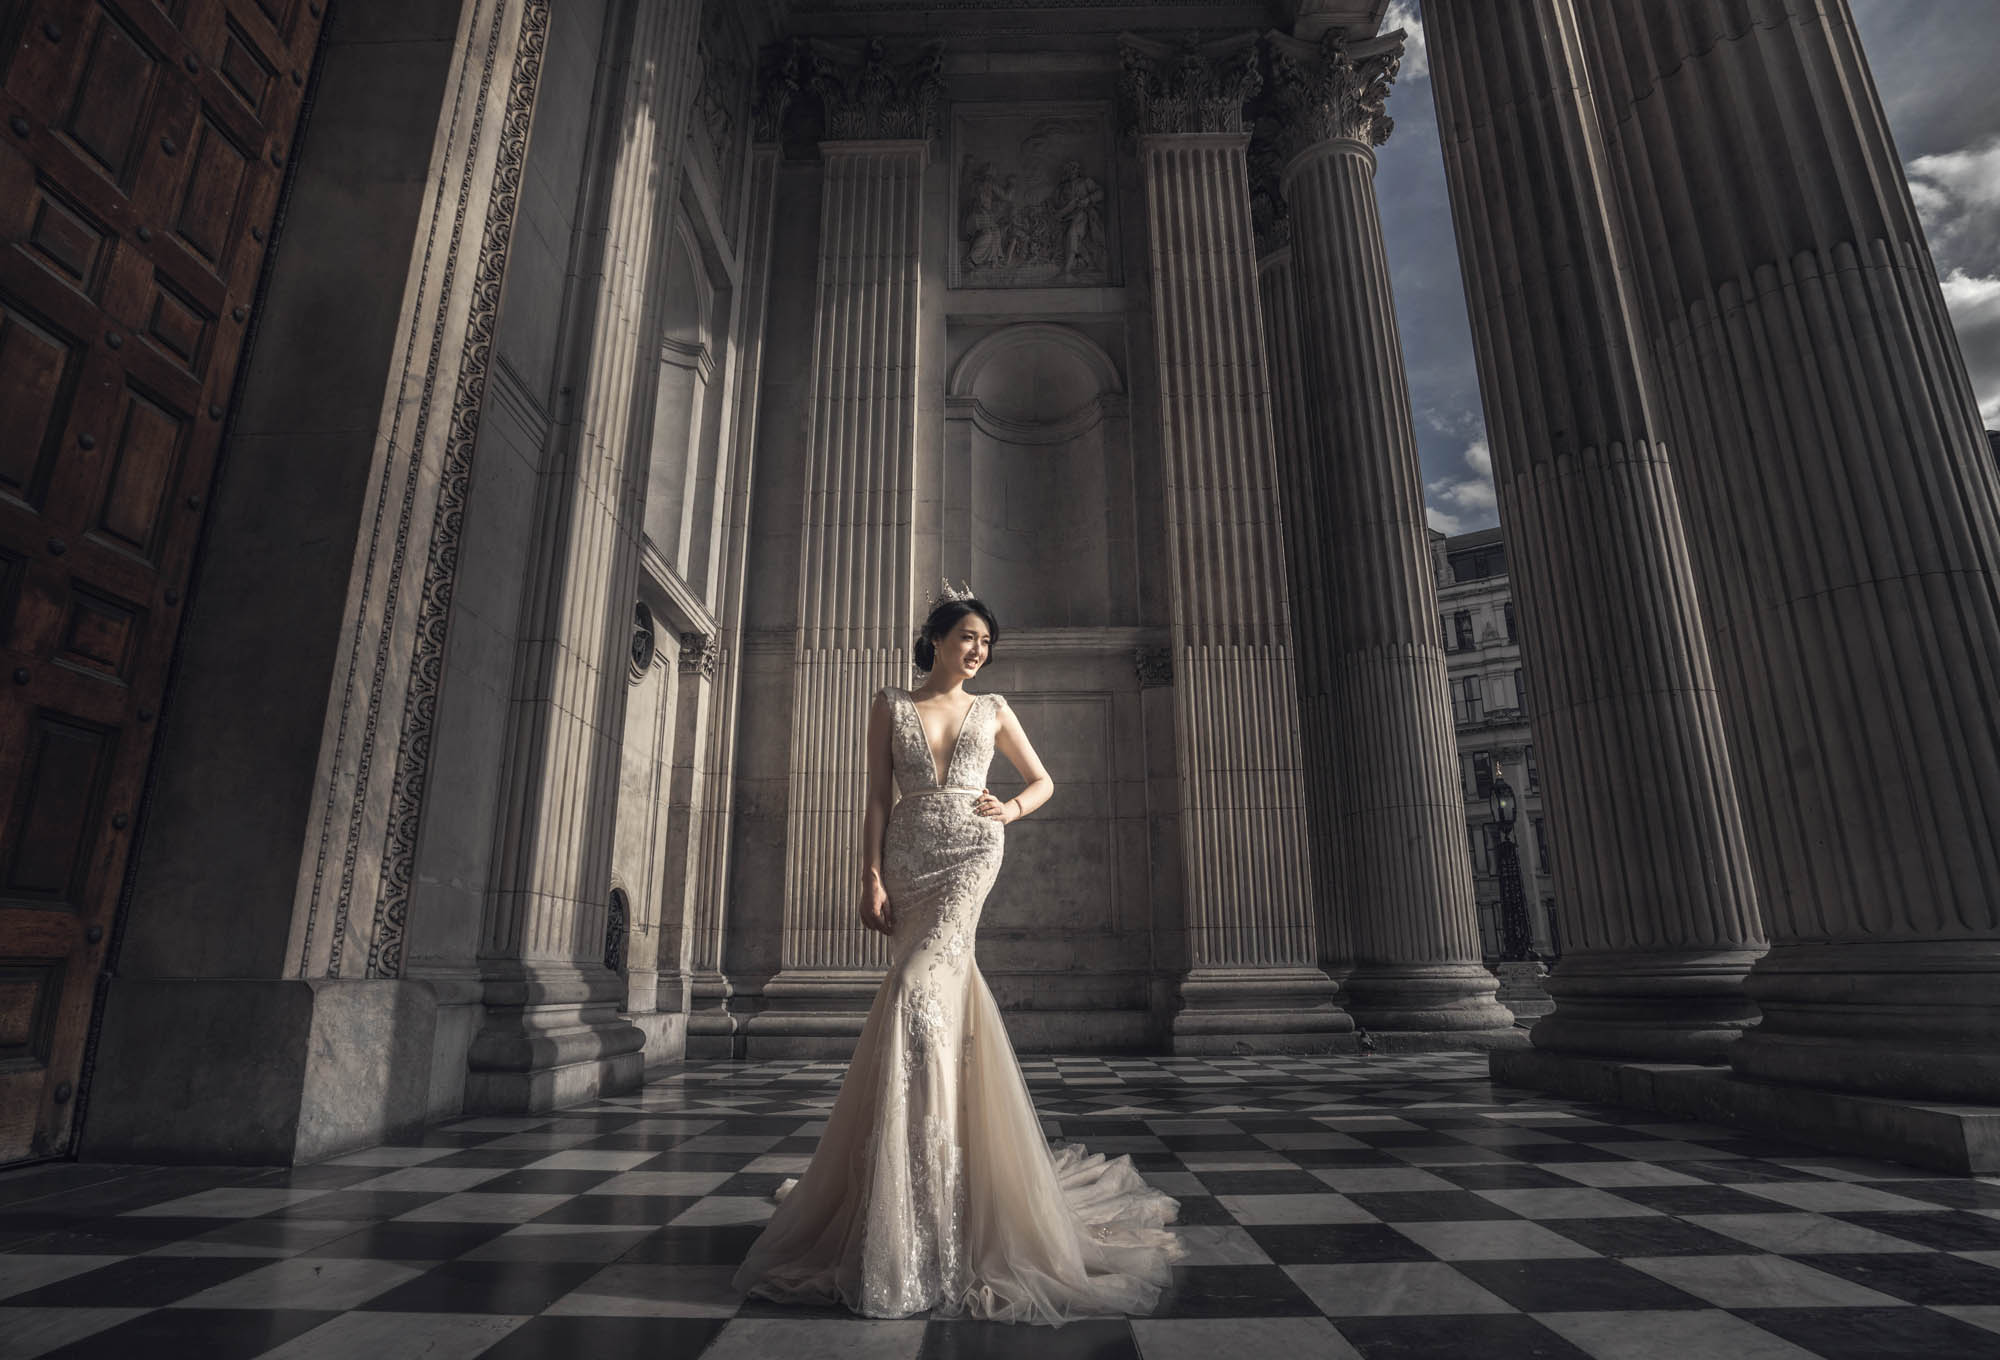 Bride in beautiful plunging neckline gown in palatial setting, by CM Leung